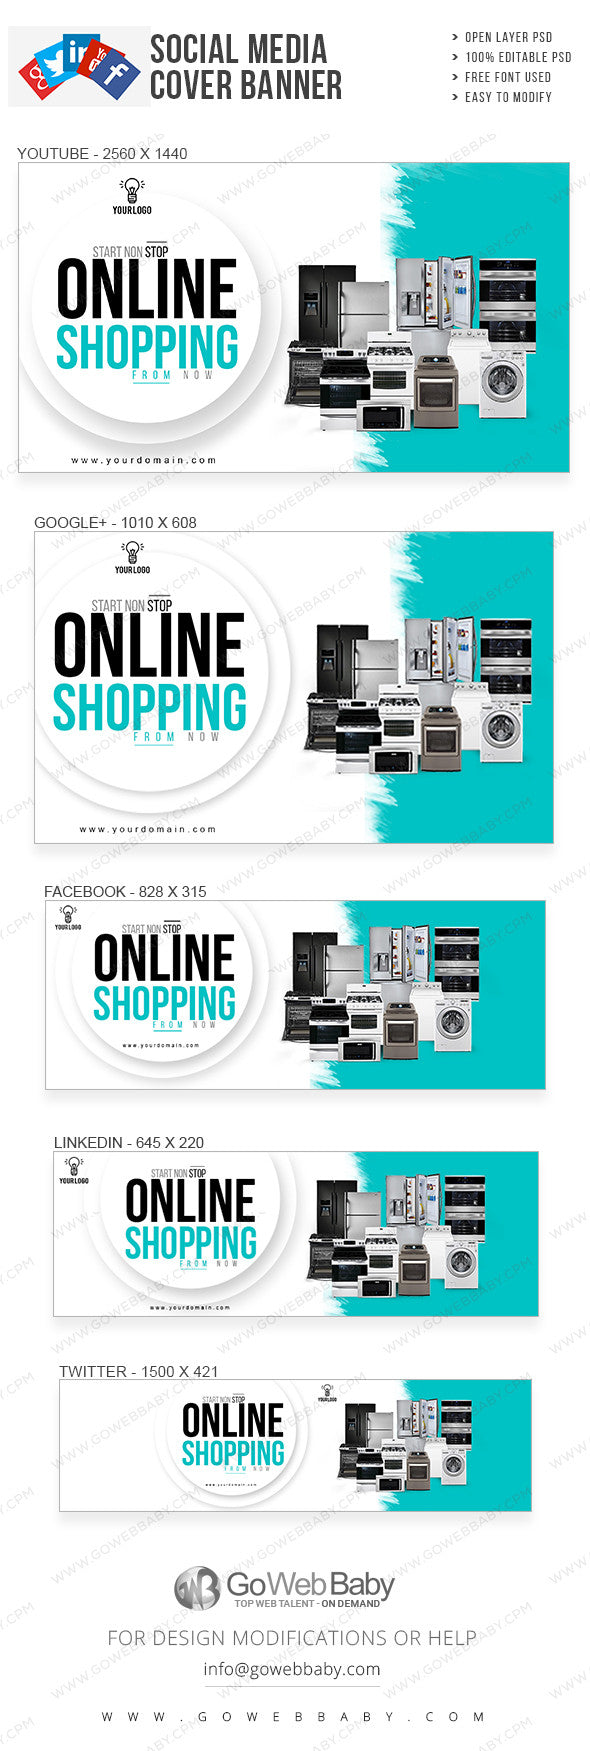 Social media covers Banner - Electronic sale  for website marketing